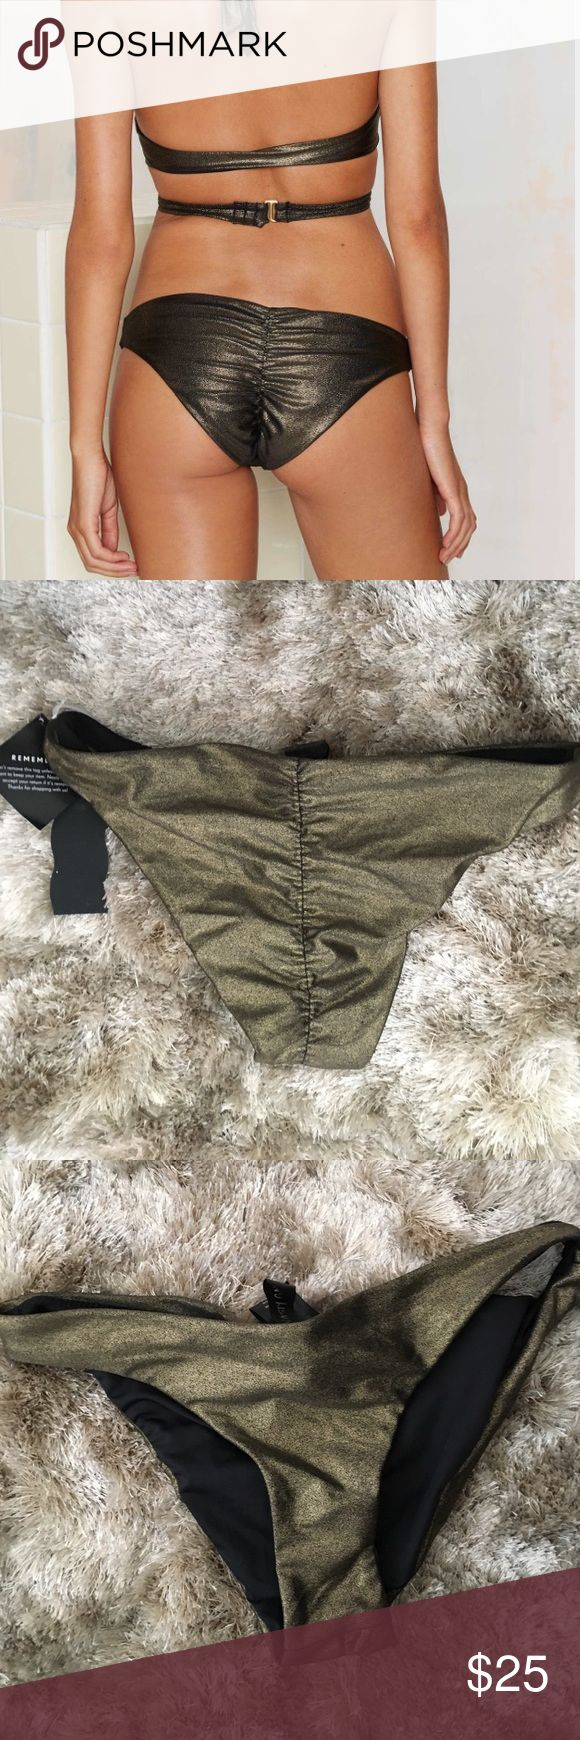 Nasty Gal Metallic Bikini Bottom Brand New from Nasty Gal or associated brand. New without tags. All items are authentic. Please refer to Nastygal.com for sizing or reviews if this listing doesn't give you the exact measurement your looking for. I'll be happy to answer any questions.   No Trade 📍 Nasty Gal Swim Bikinis